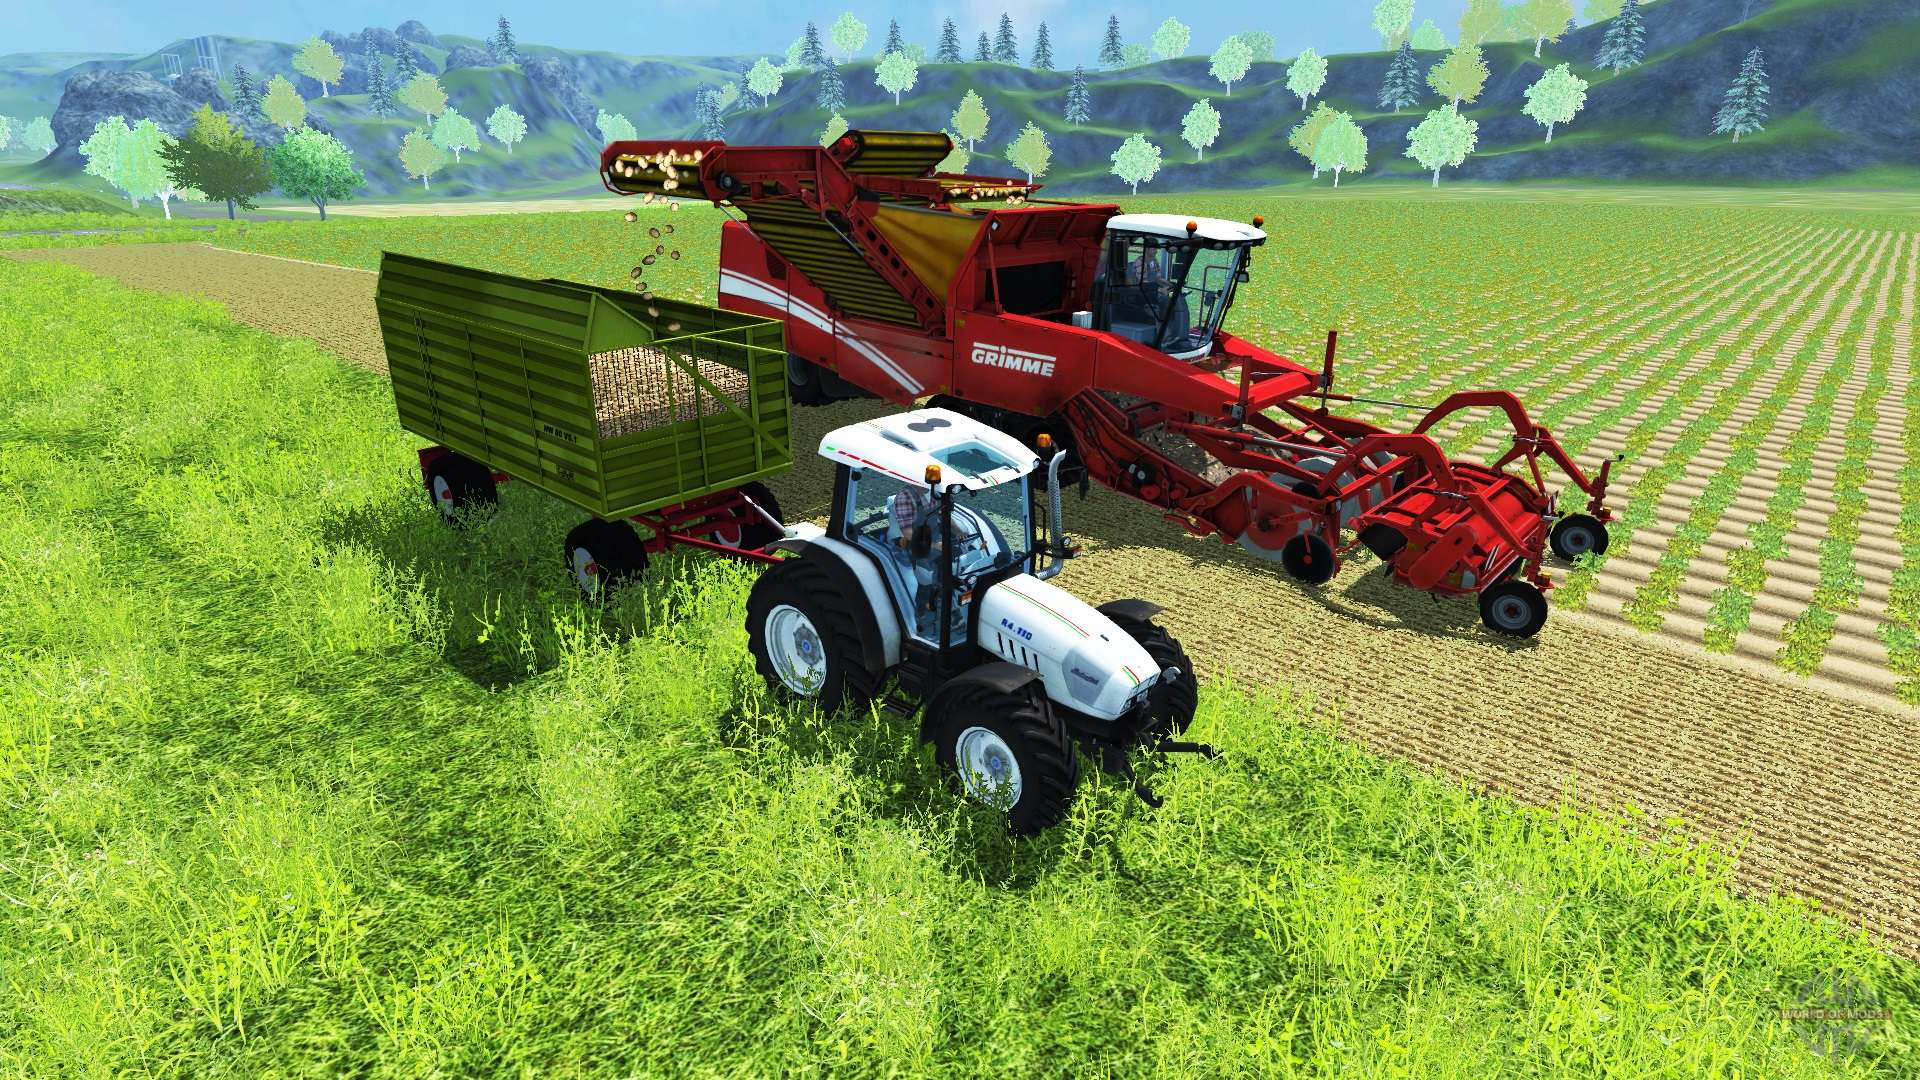 Machine a Betterave Farming Simulator 2013 Farming Simulator 2013